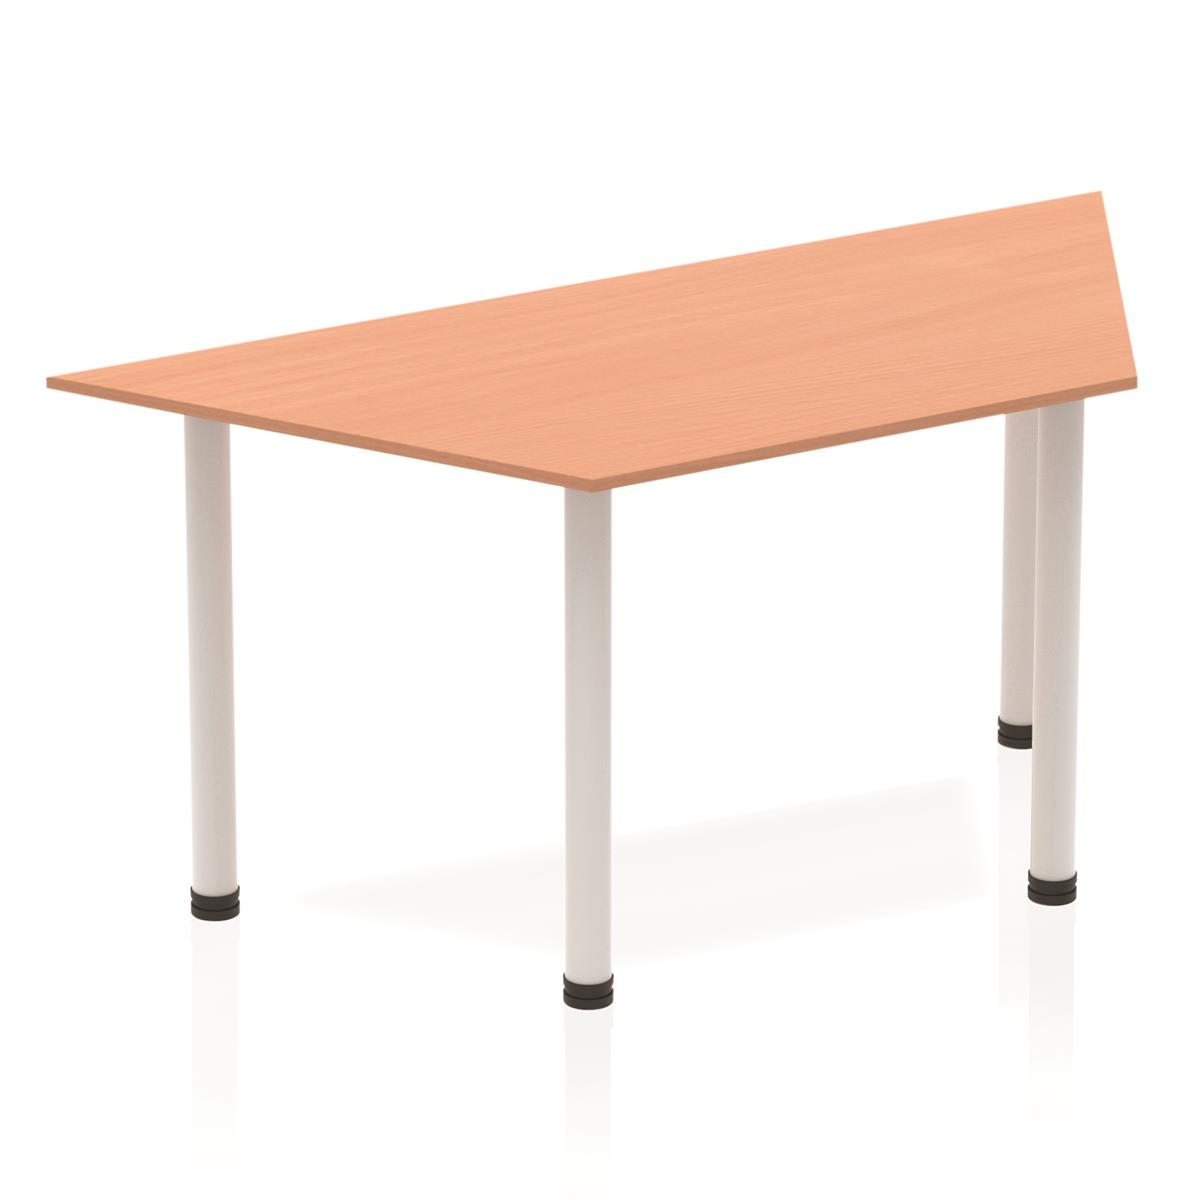 Image for Sonix Trapezium Table Post Leg 1600mm Beech